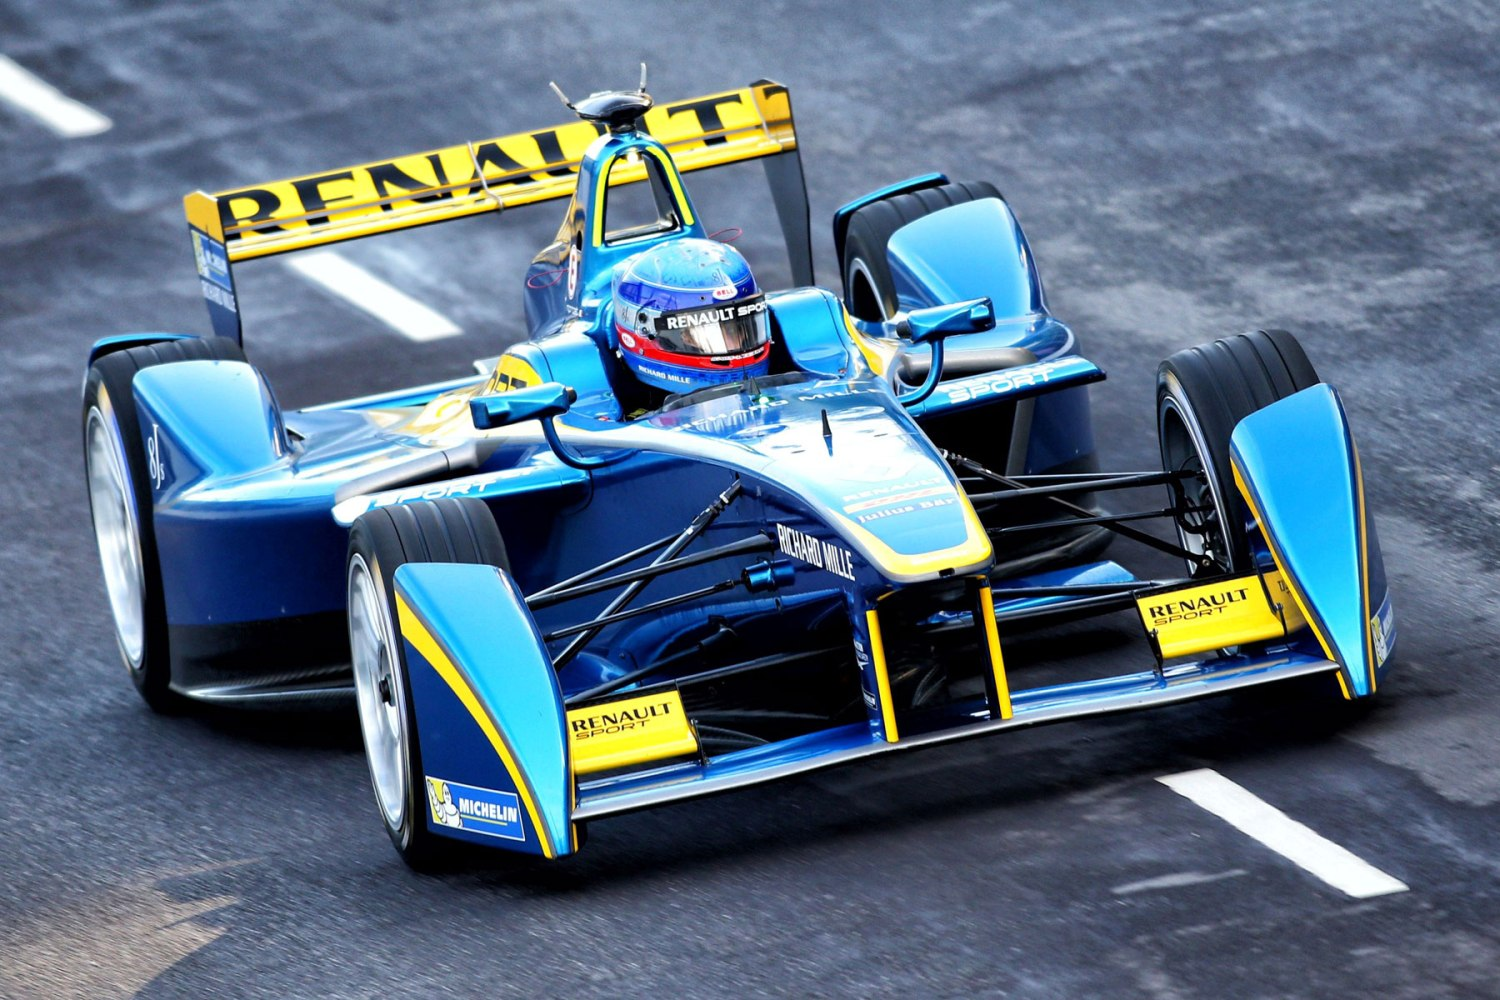 Motorsport fans invited to watch Formula E testing free of charge